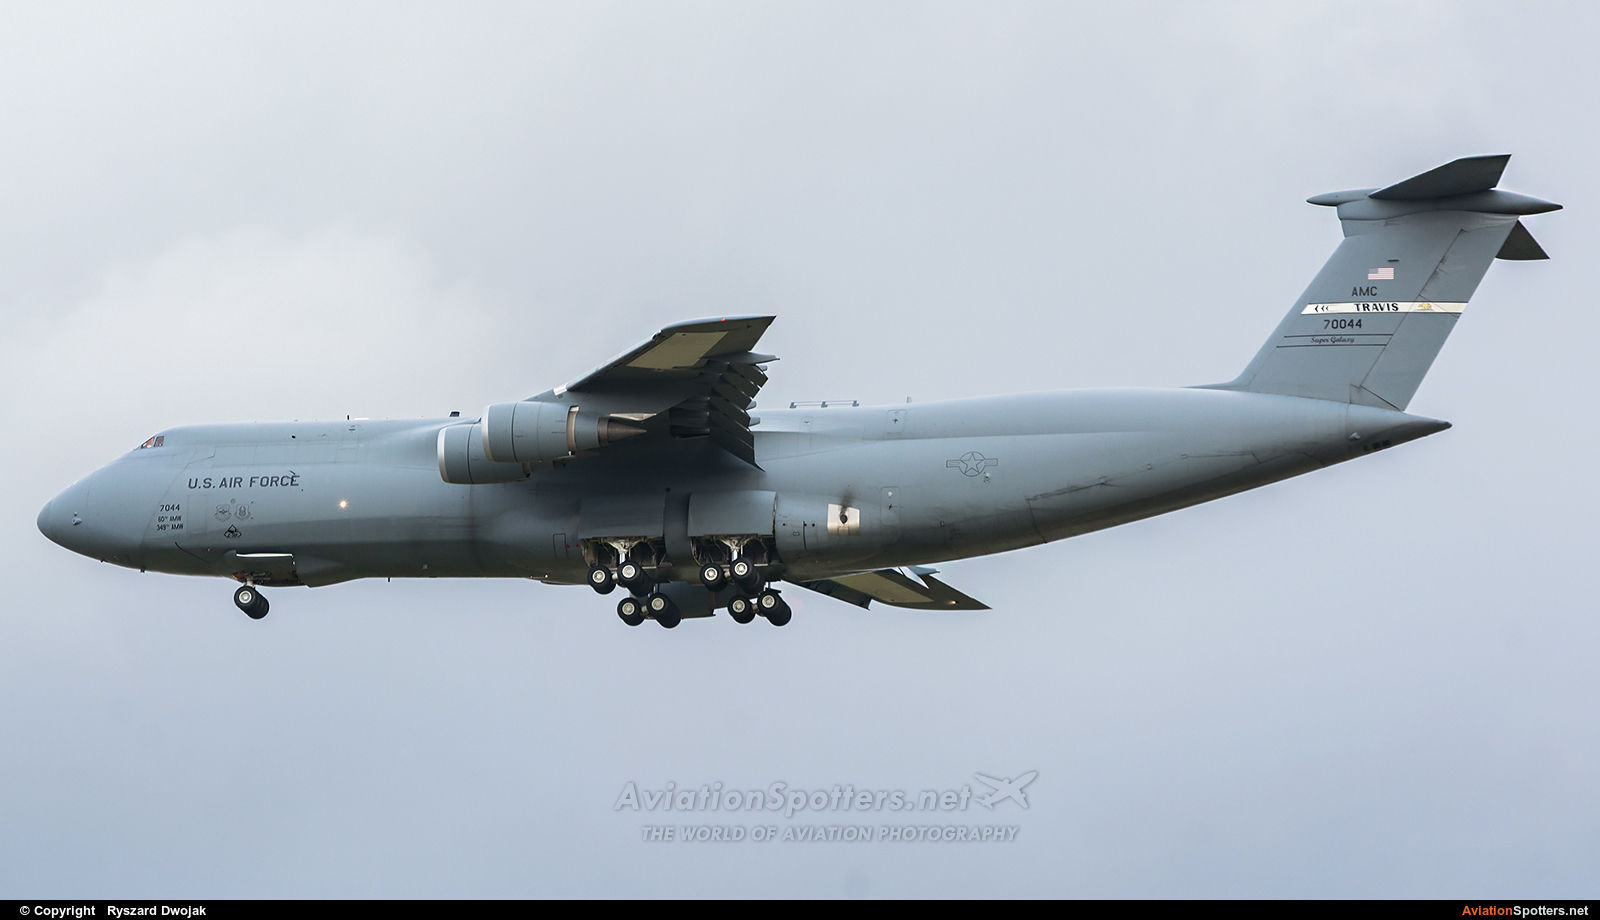 USA - Air Force  -  C-5M Super Galaxy  (87-0044) By Ryszard Dwojak (ryś)